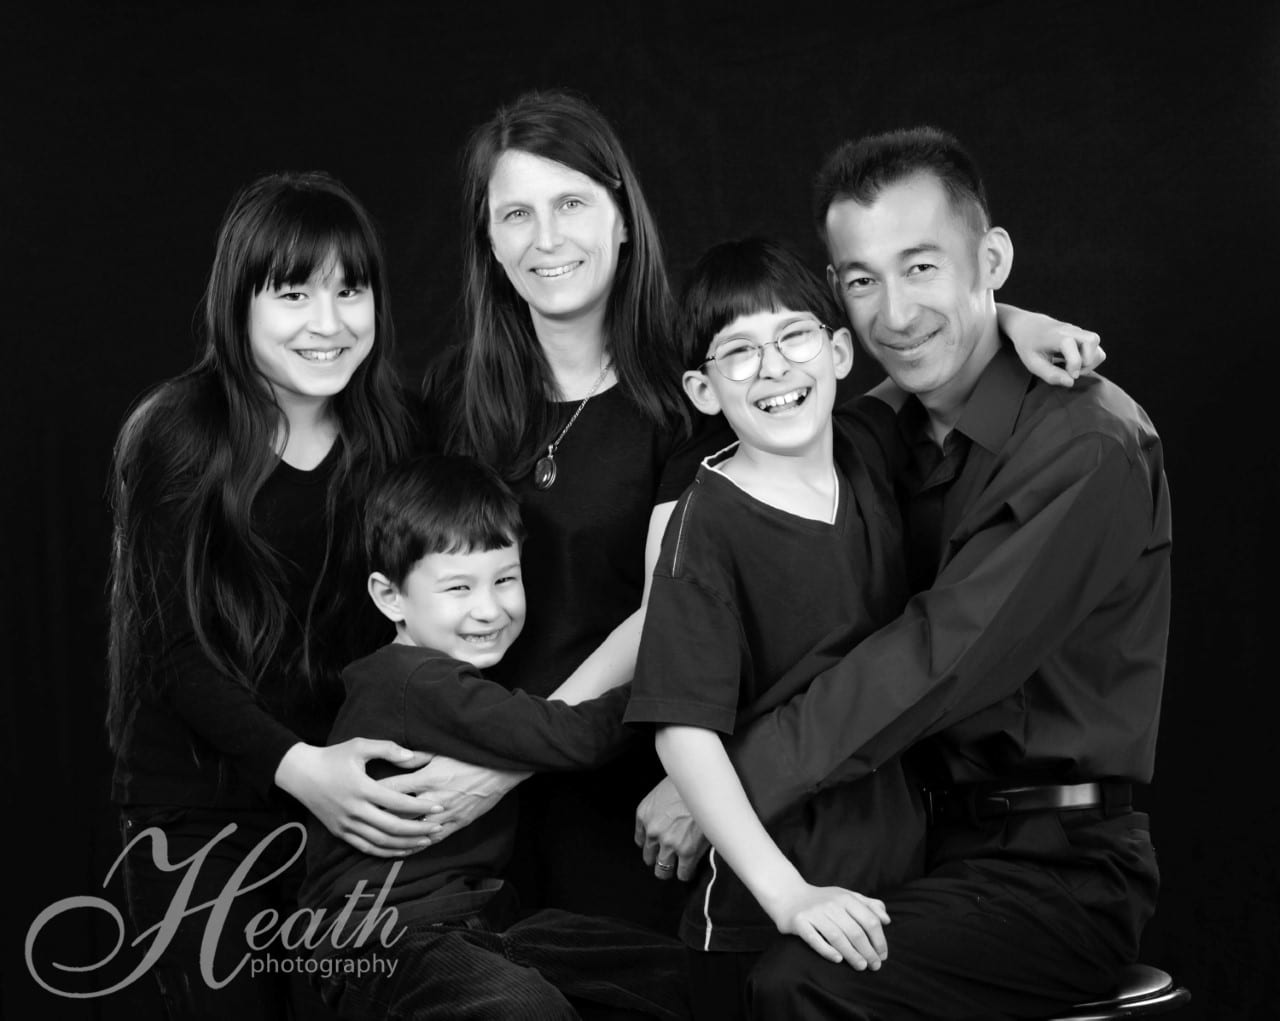 FAMILY SESSION PACKAGE  Donated by: HEATH PHOTOGRAPHY  Valued at: $390